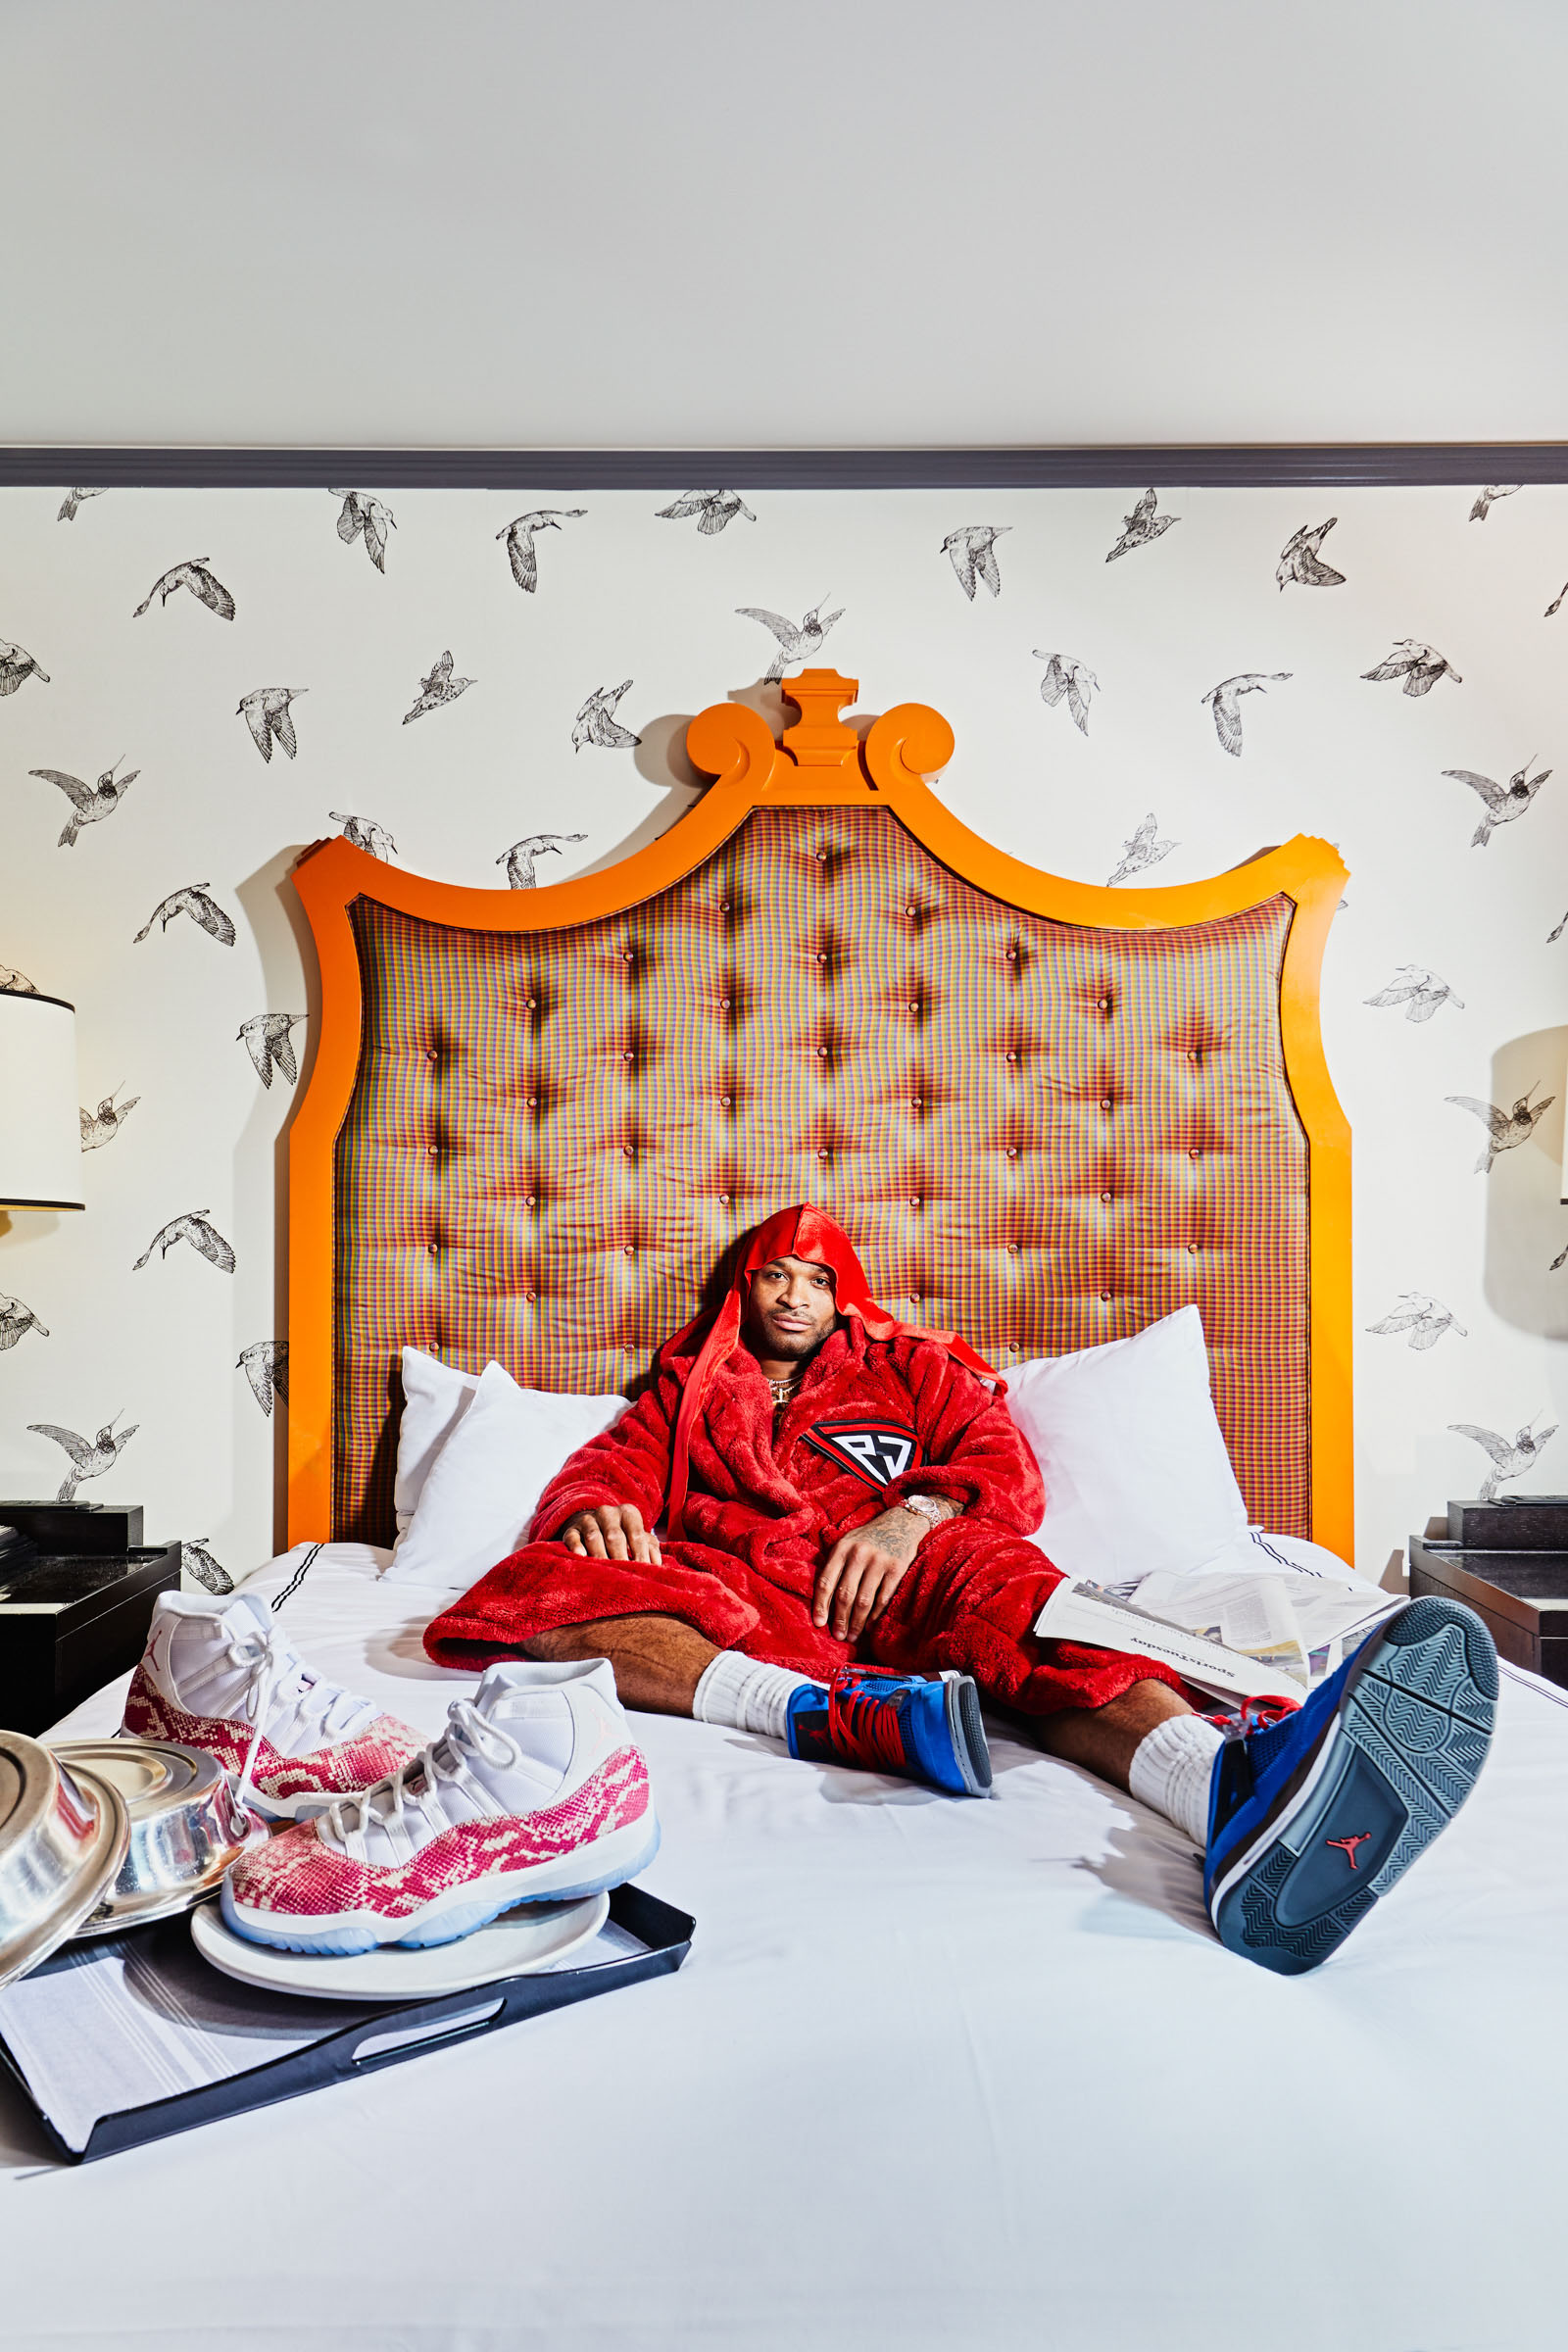 P.J. Tucker is the NBA's sneaker king, and a forward on the Houston Rockets. Photographed in bed at the Monaco Hotel, surrounded by his collection of collectible sneakers for Footwear News by Andy Batt.